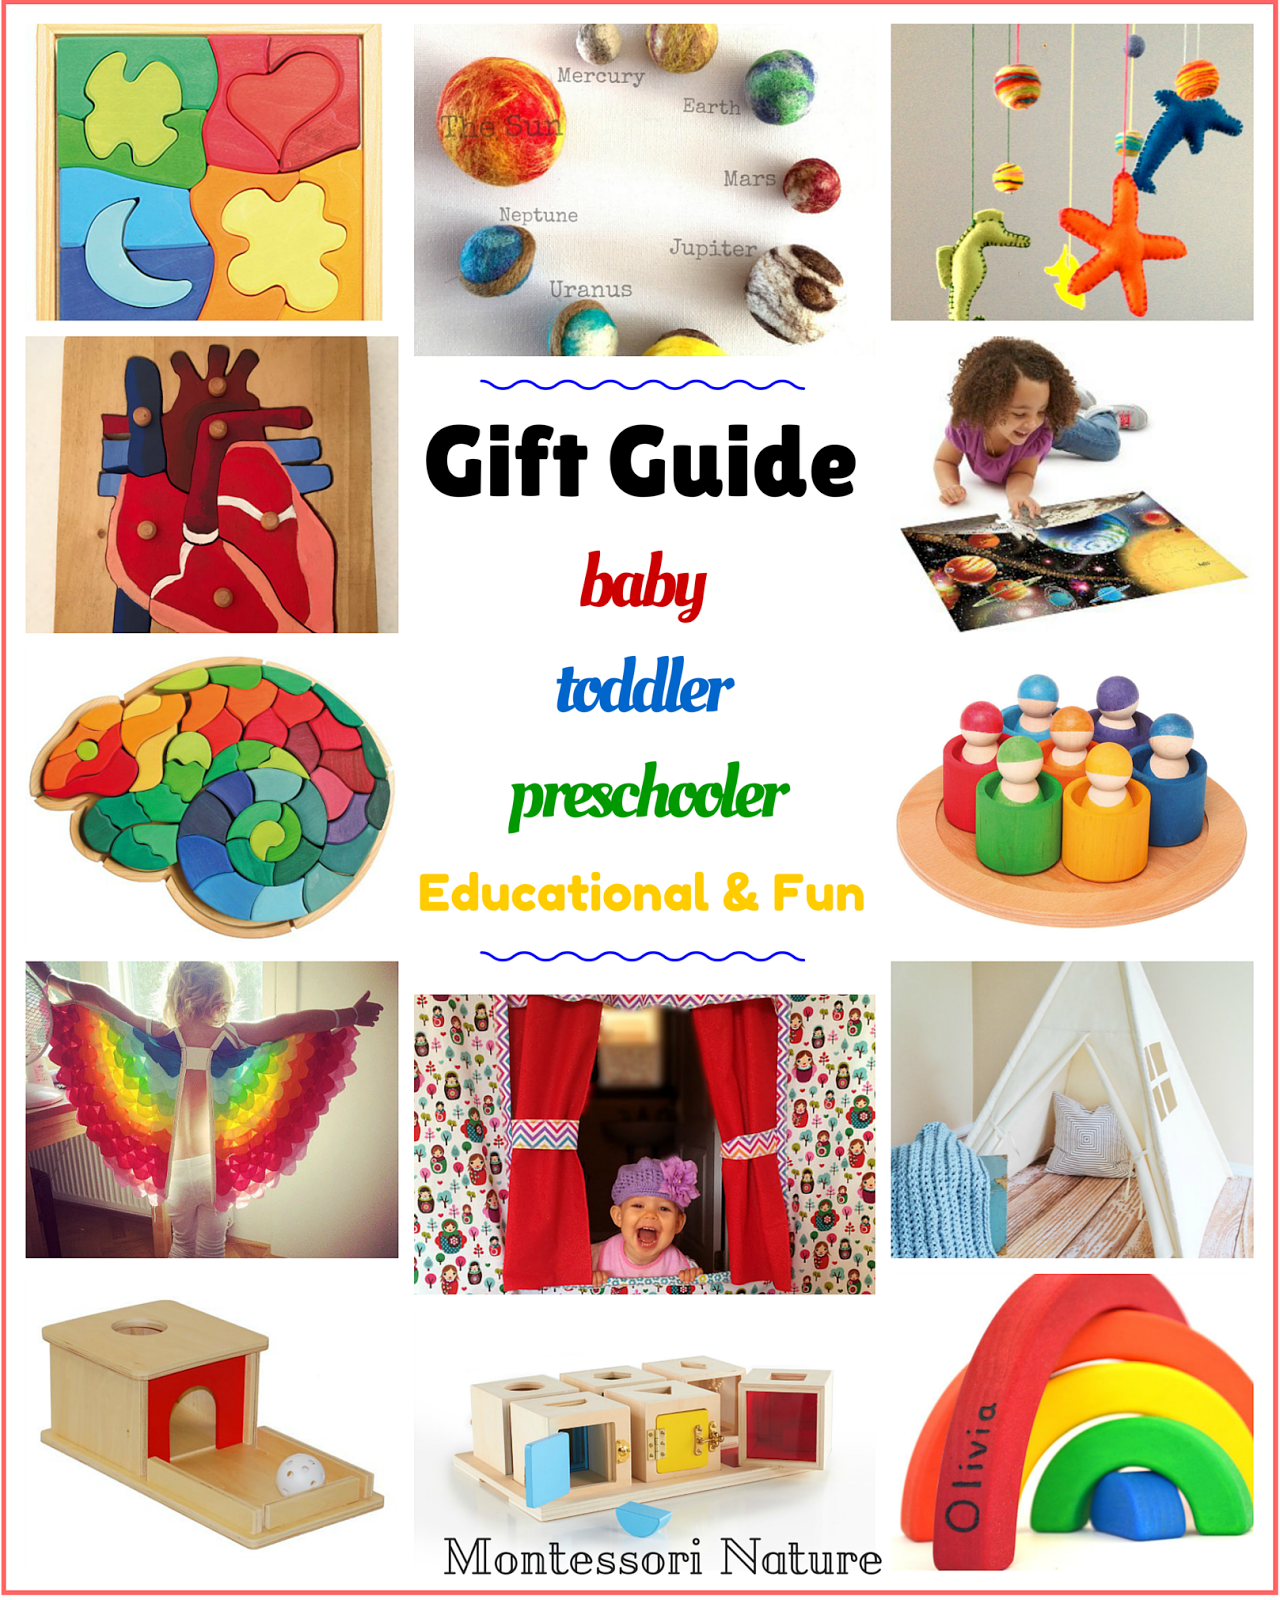 Homemade Gift For One Year Old Baby - Gift Ideas